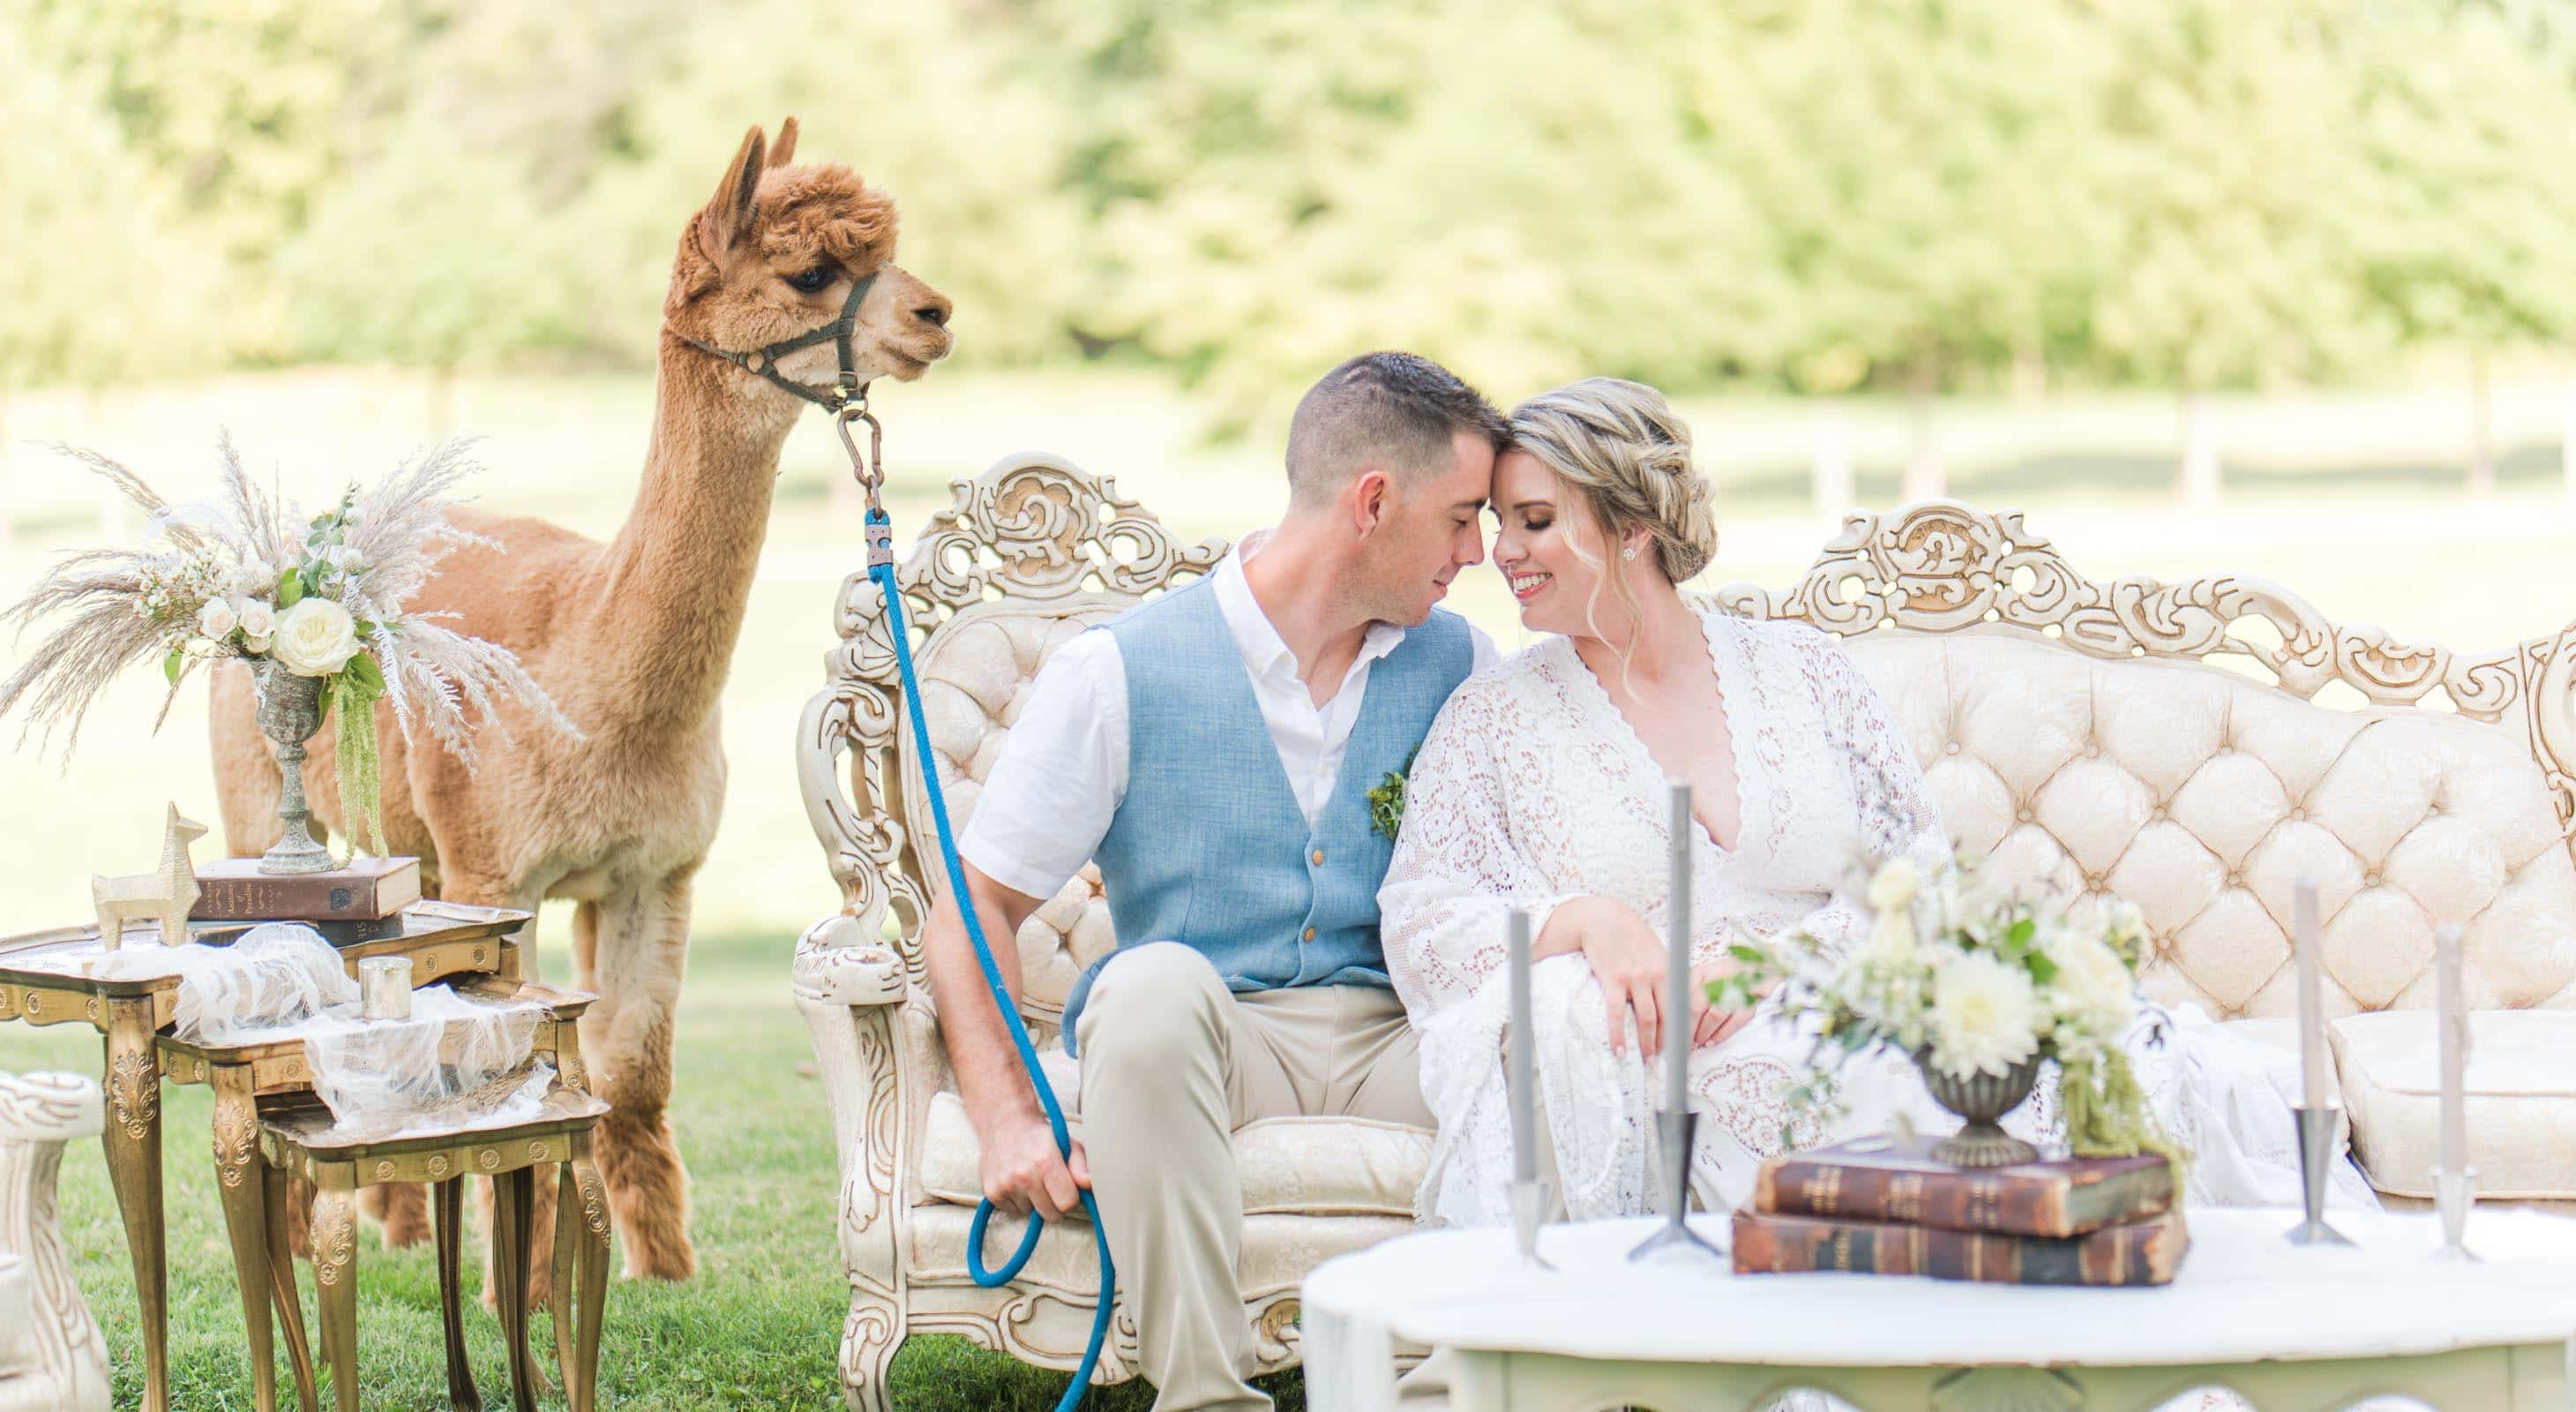 wedding couple seated on a couch outdoor next to an alpaca